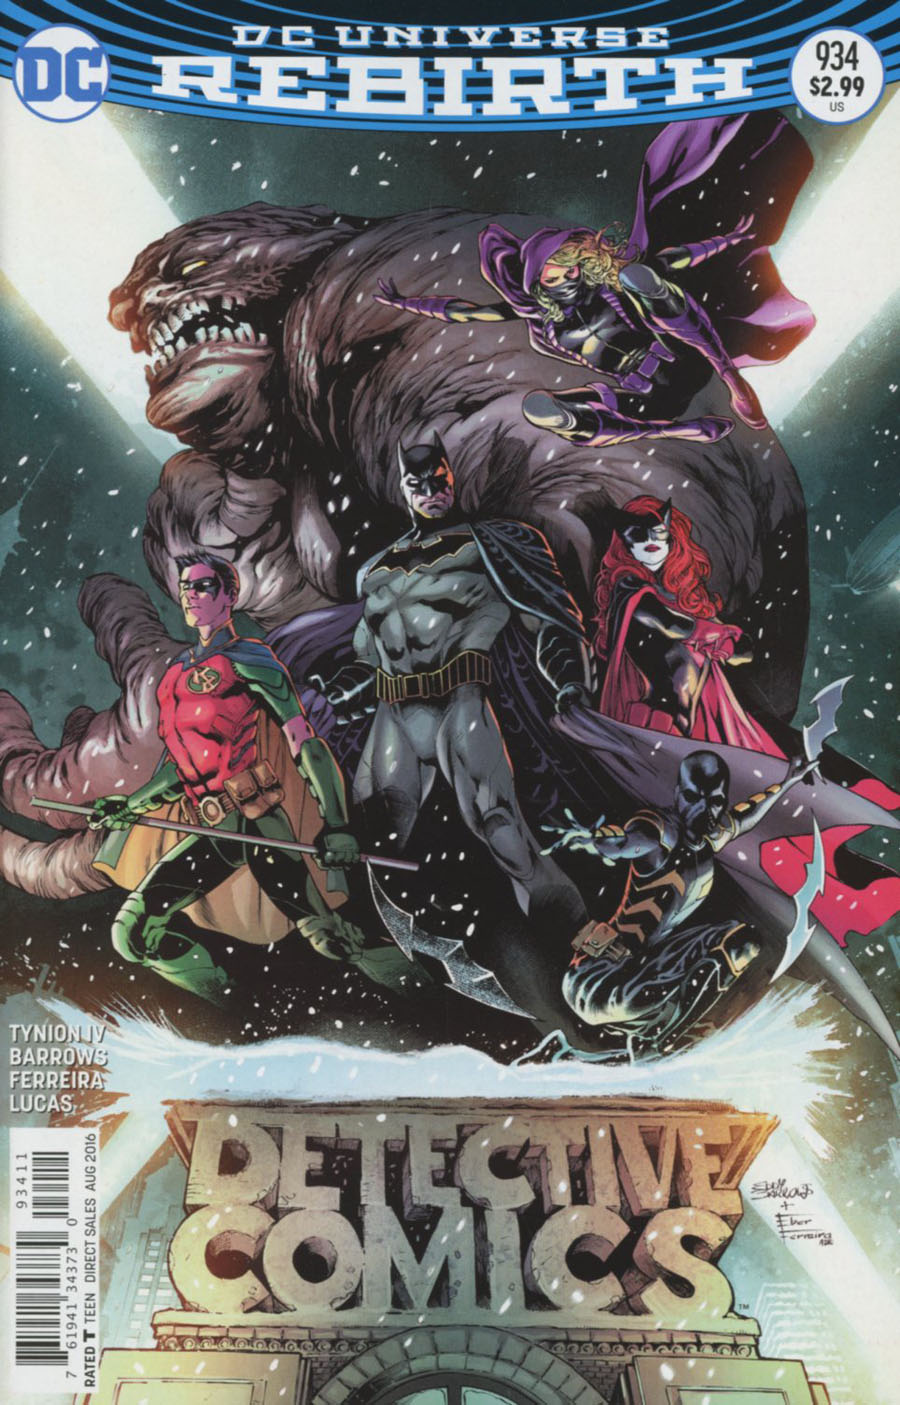 Batman - Detective Comics 934 - Rise of the Batmen Part 1: The Young and the Brave